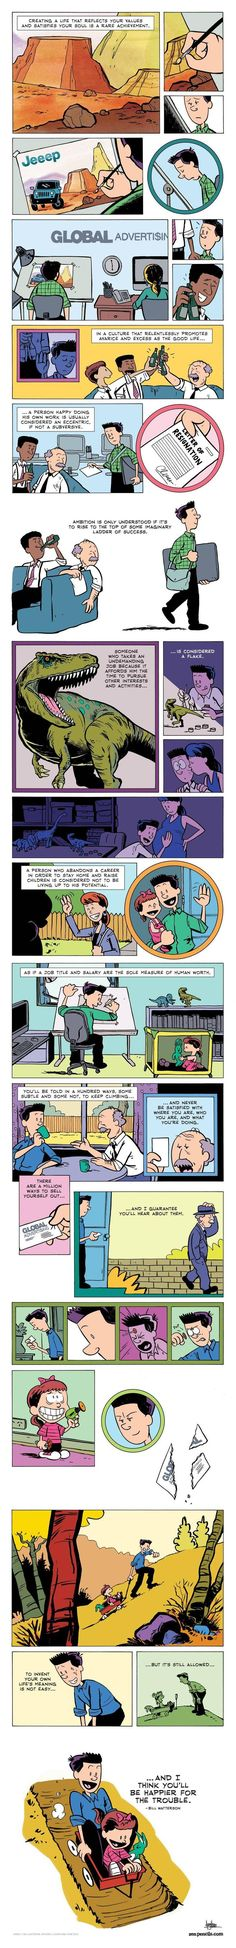 word of wisdom, cartoon quotes, life lessons, bill watterson, meaning of life, thought, inspirational quotes, the artist, comic strips